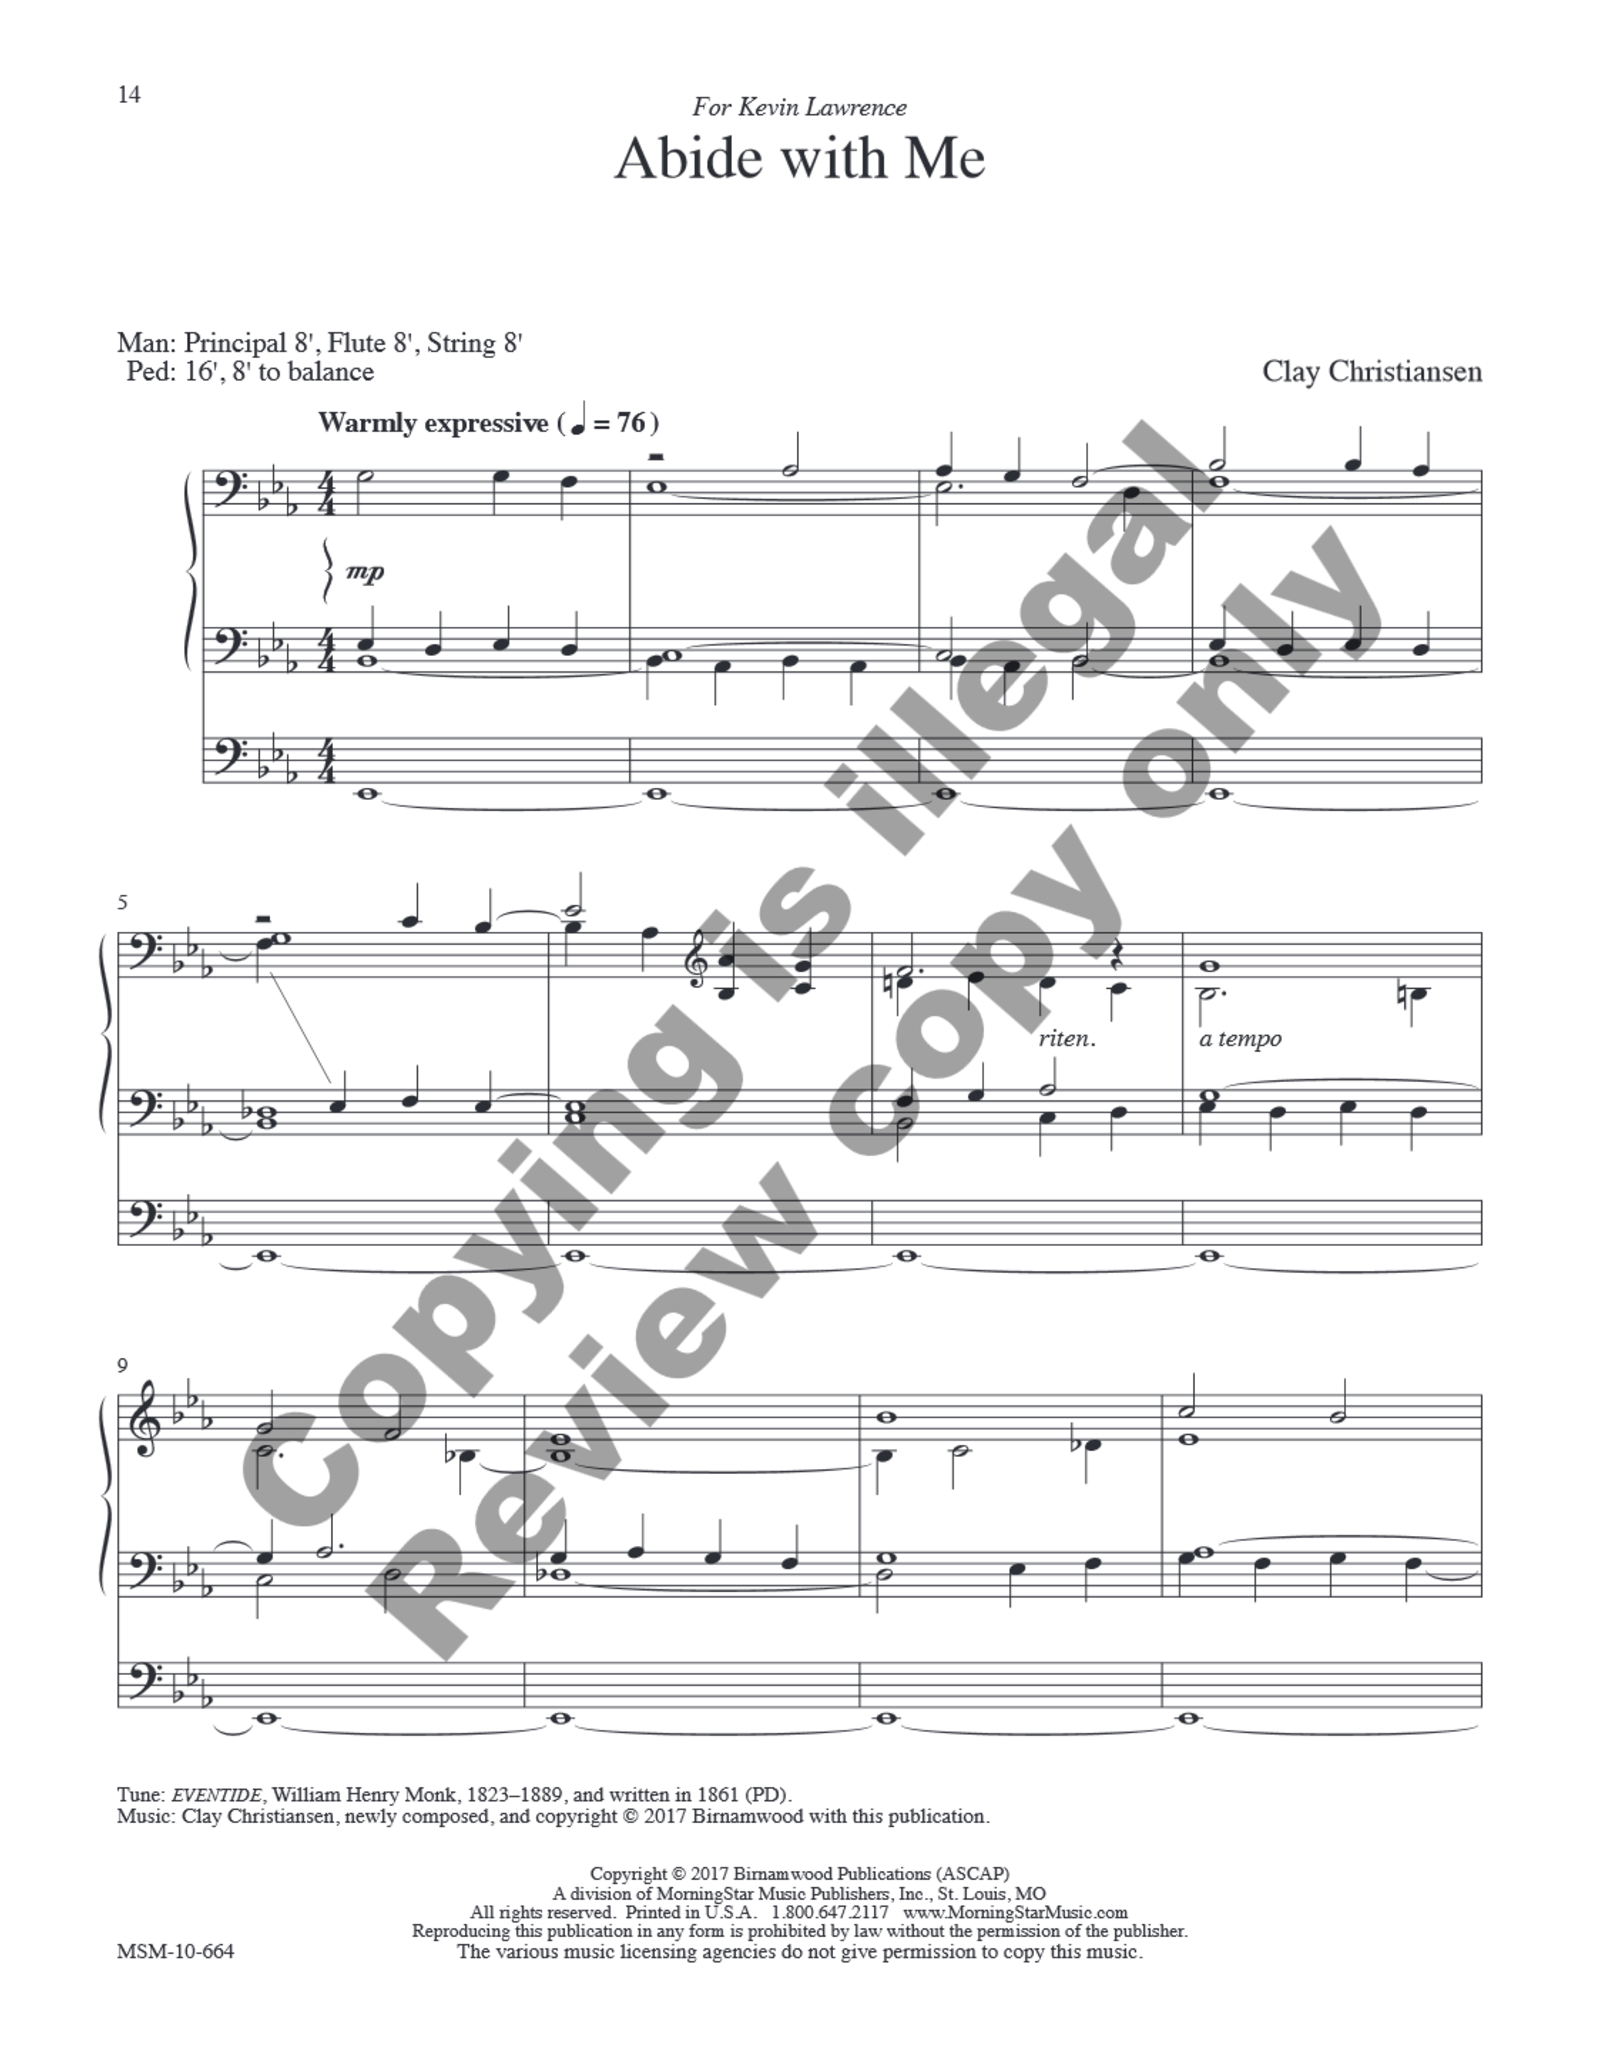 MorningStar All Things Bright and Beautiful: Eight Hymn Settings for Organ By Clay Christiansen